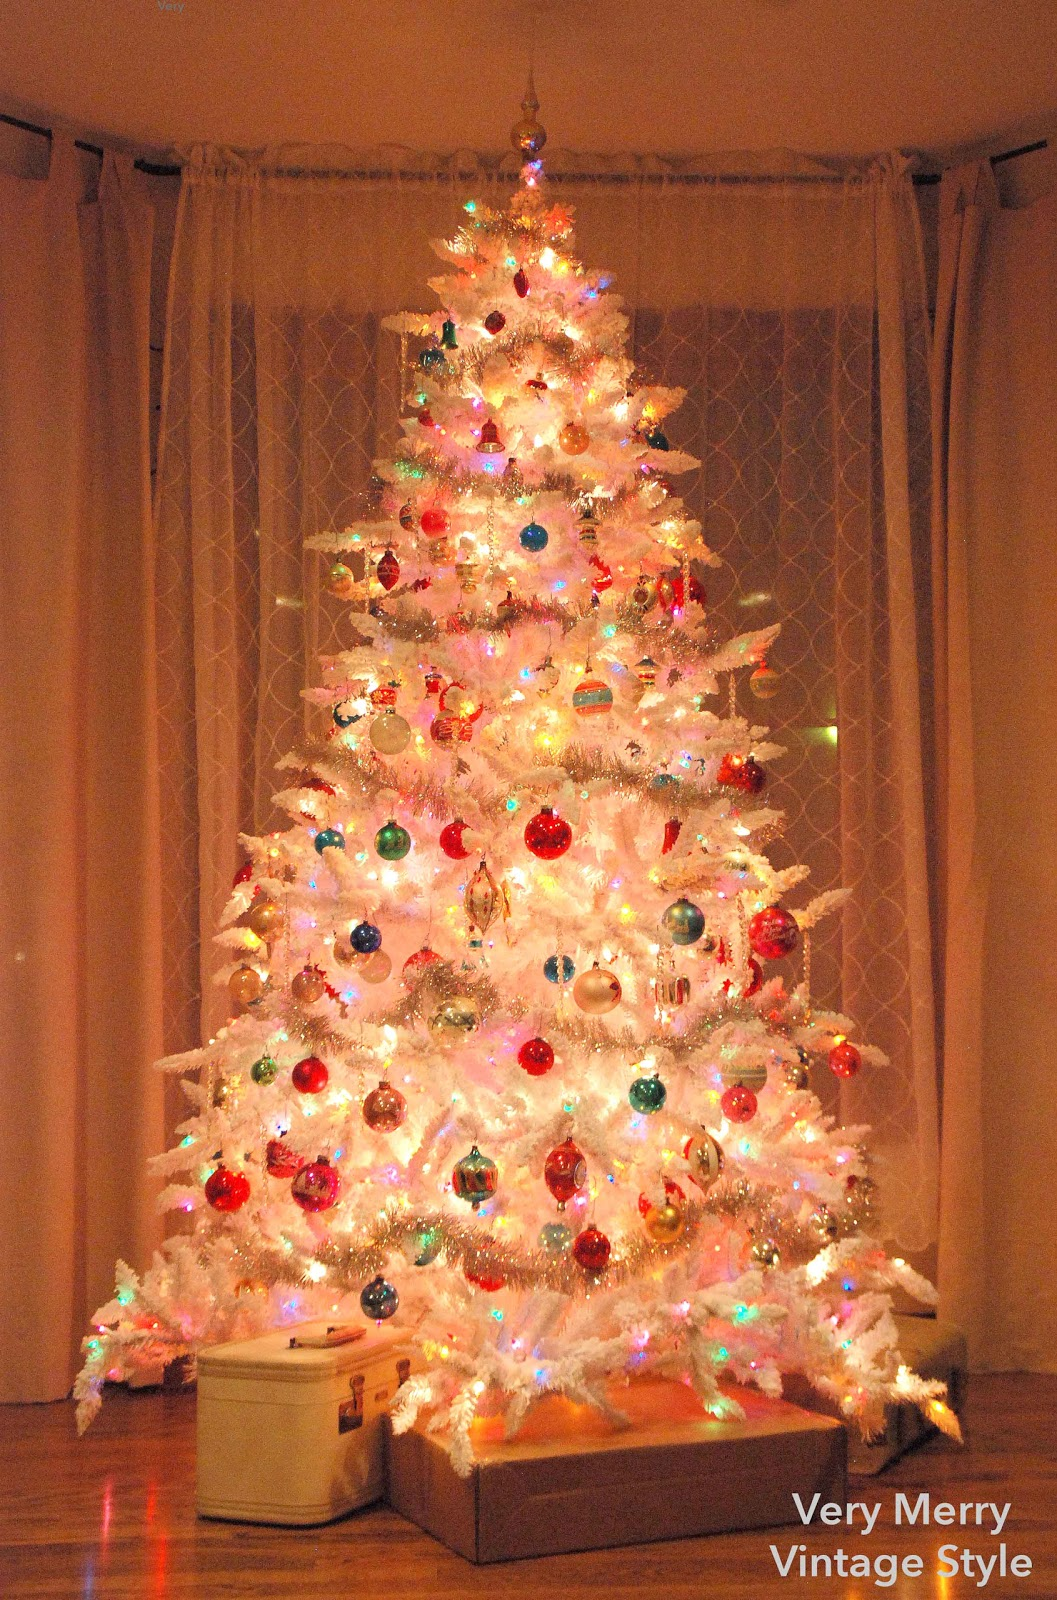 White Christmas Tree Multicolor Lights – Merry Christmas And Happy ...